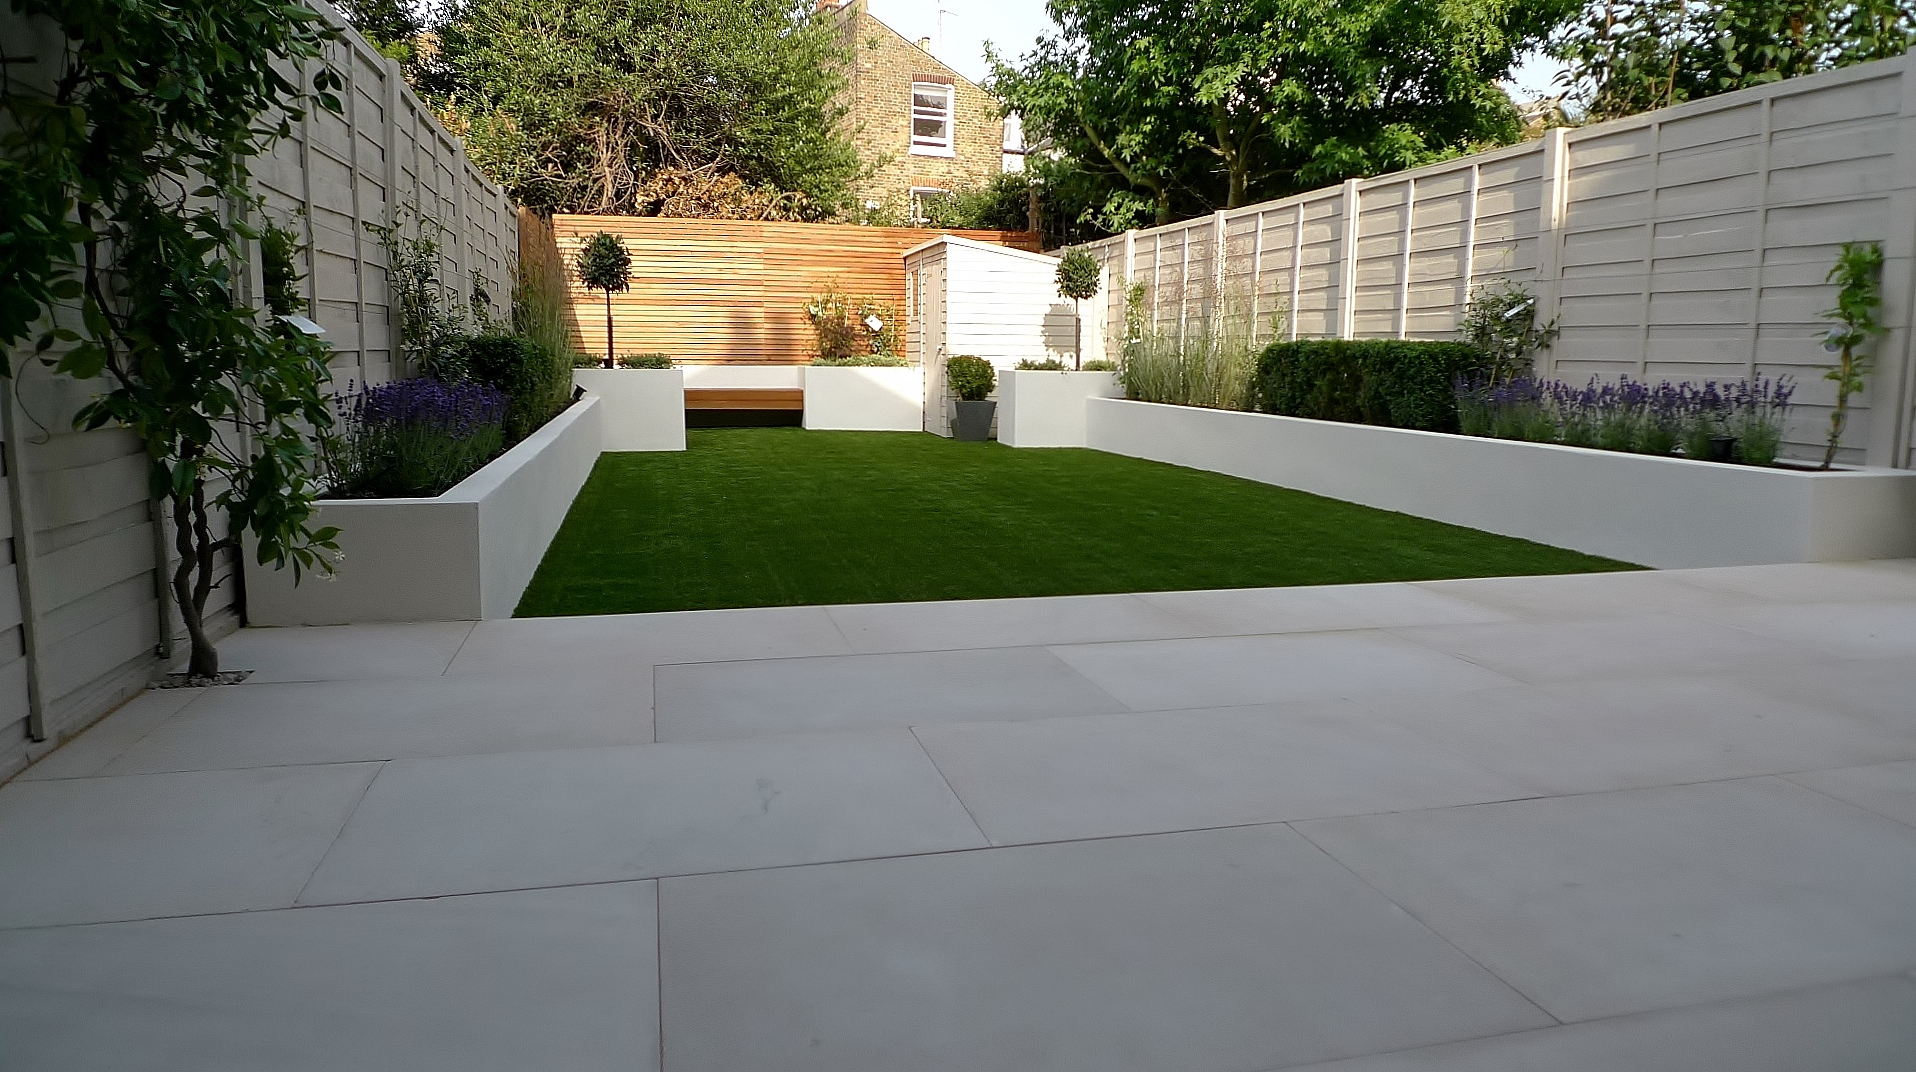 Sandstone london garden design for Modern low maintenance garden ideas